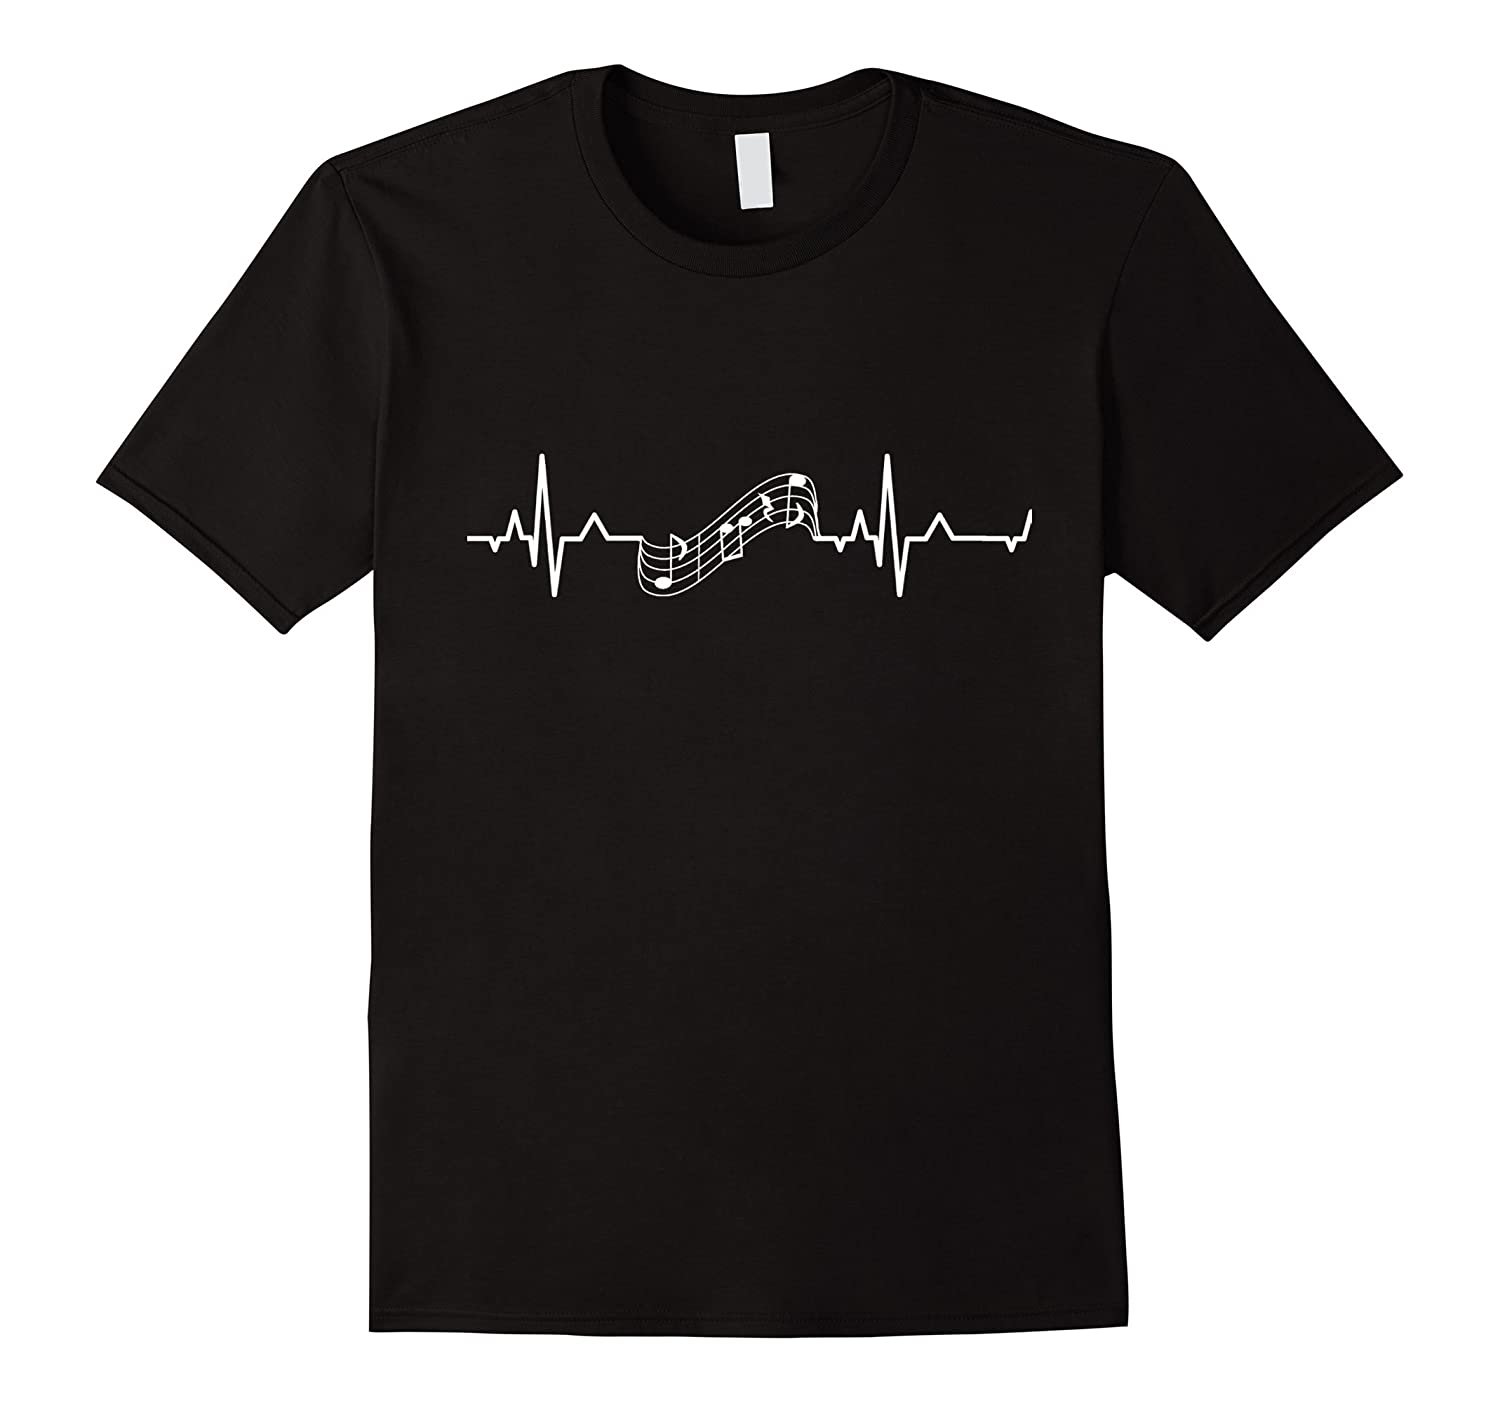 Music Staff Heartbeat T-Shirt Heartbeat to Music Notes White-RT